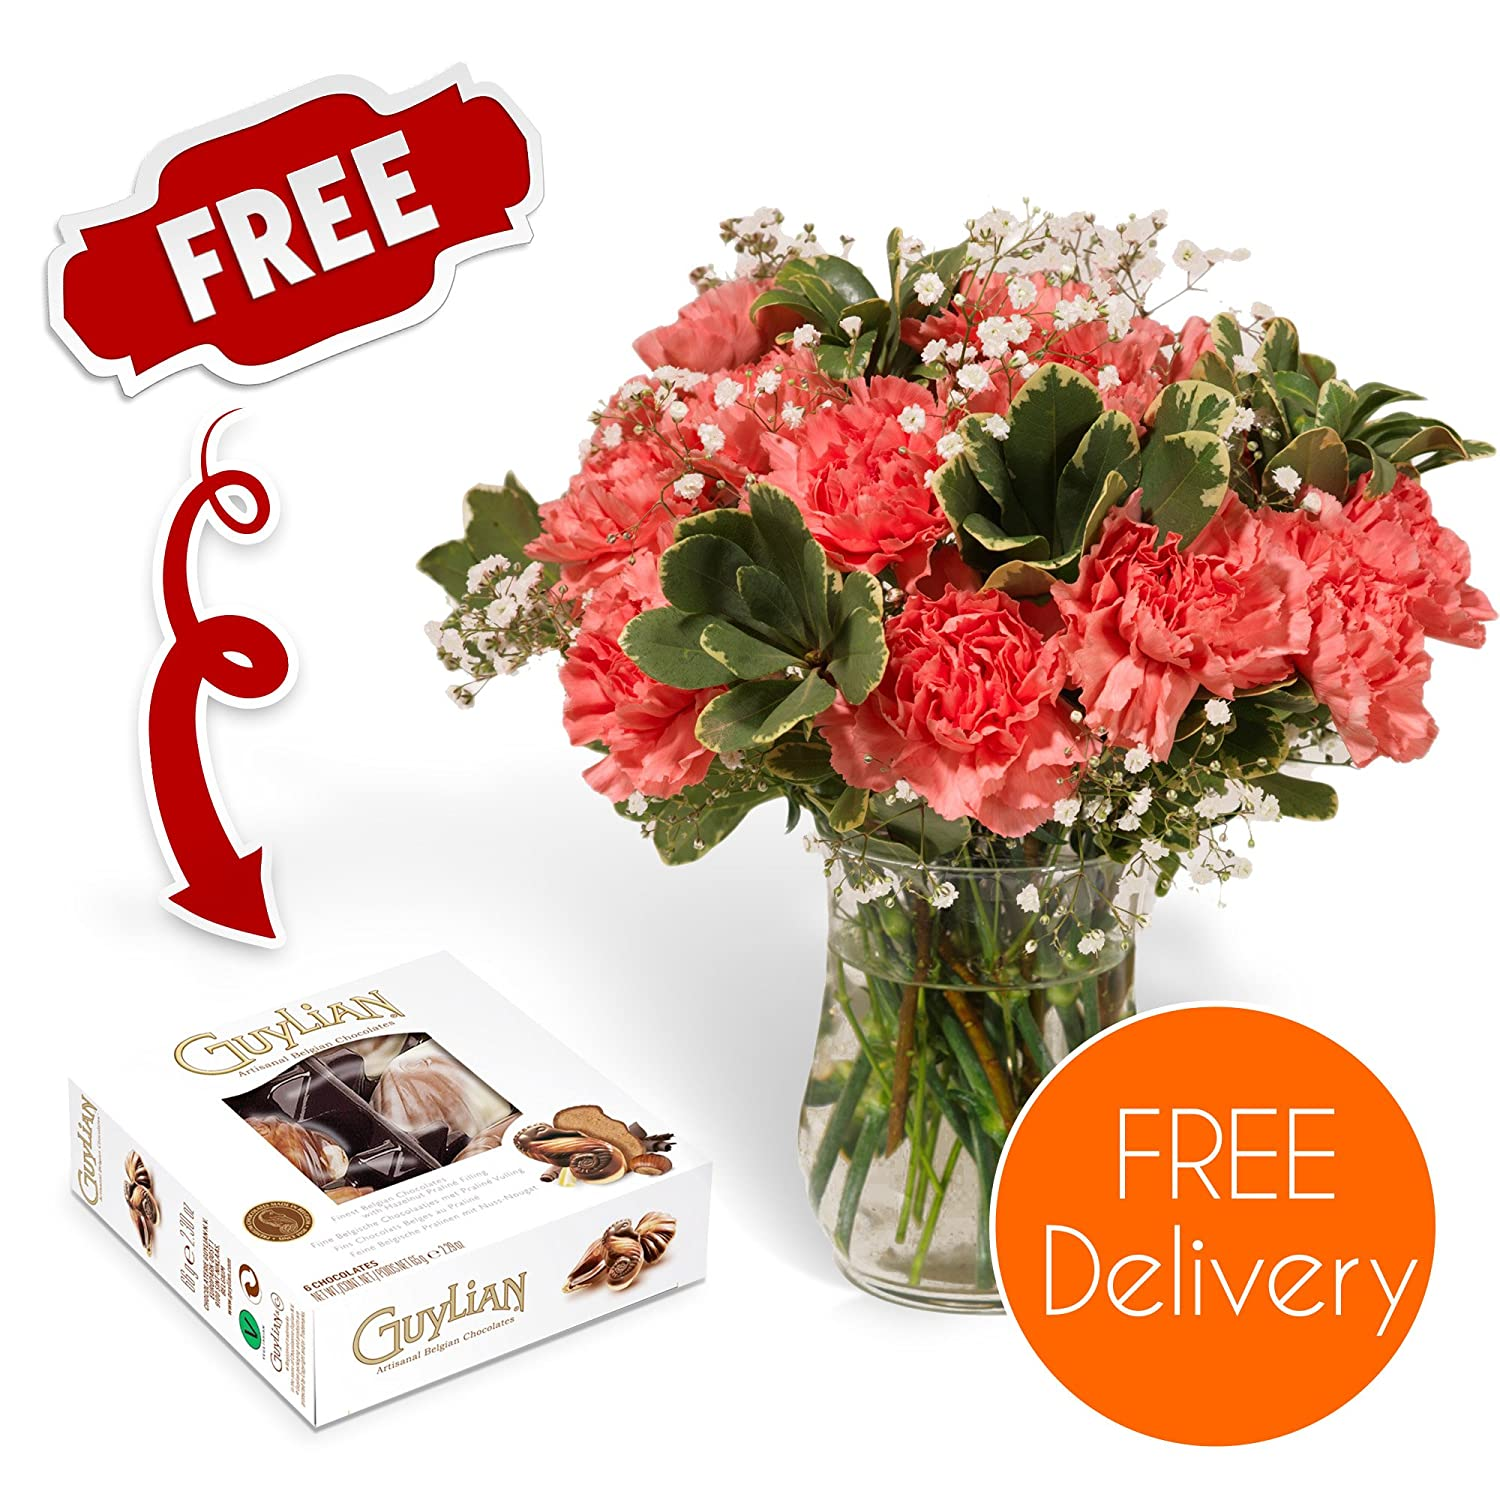 Fresh flowers delivered delivery included 18 pink carnations bouquet with chocolates flower food and bonus ebook guide perfect for birthdays fresh flowers delivered delivery included 18 pink carnations bouquet with chocolates flower food and bonus ebook g